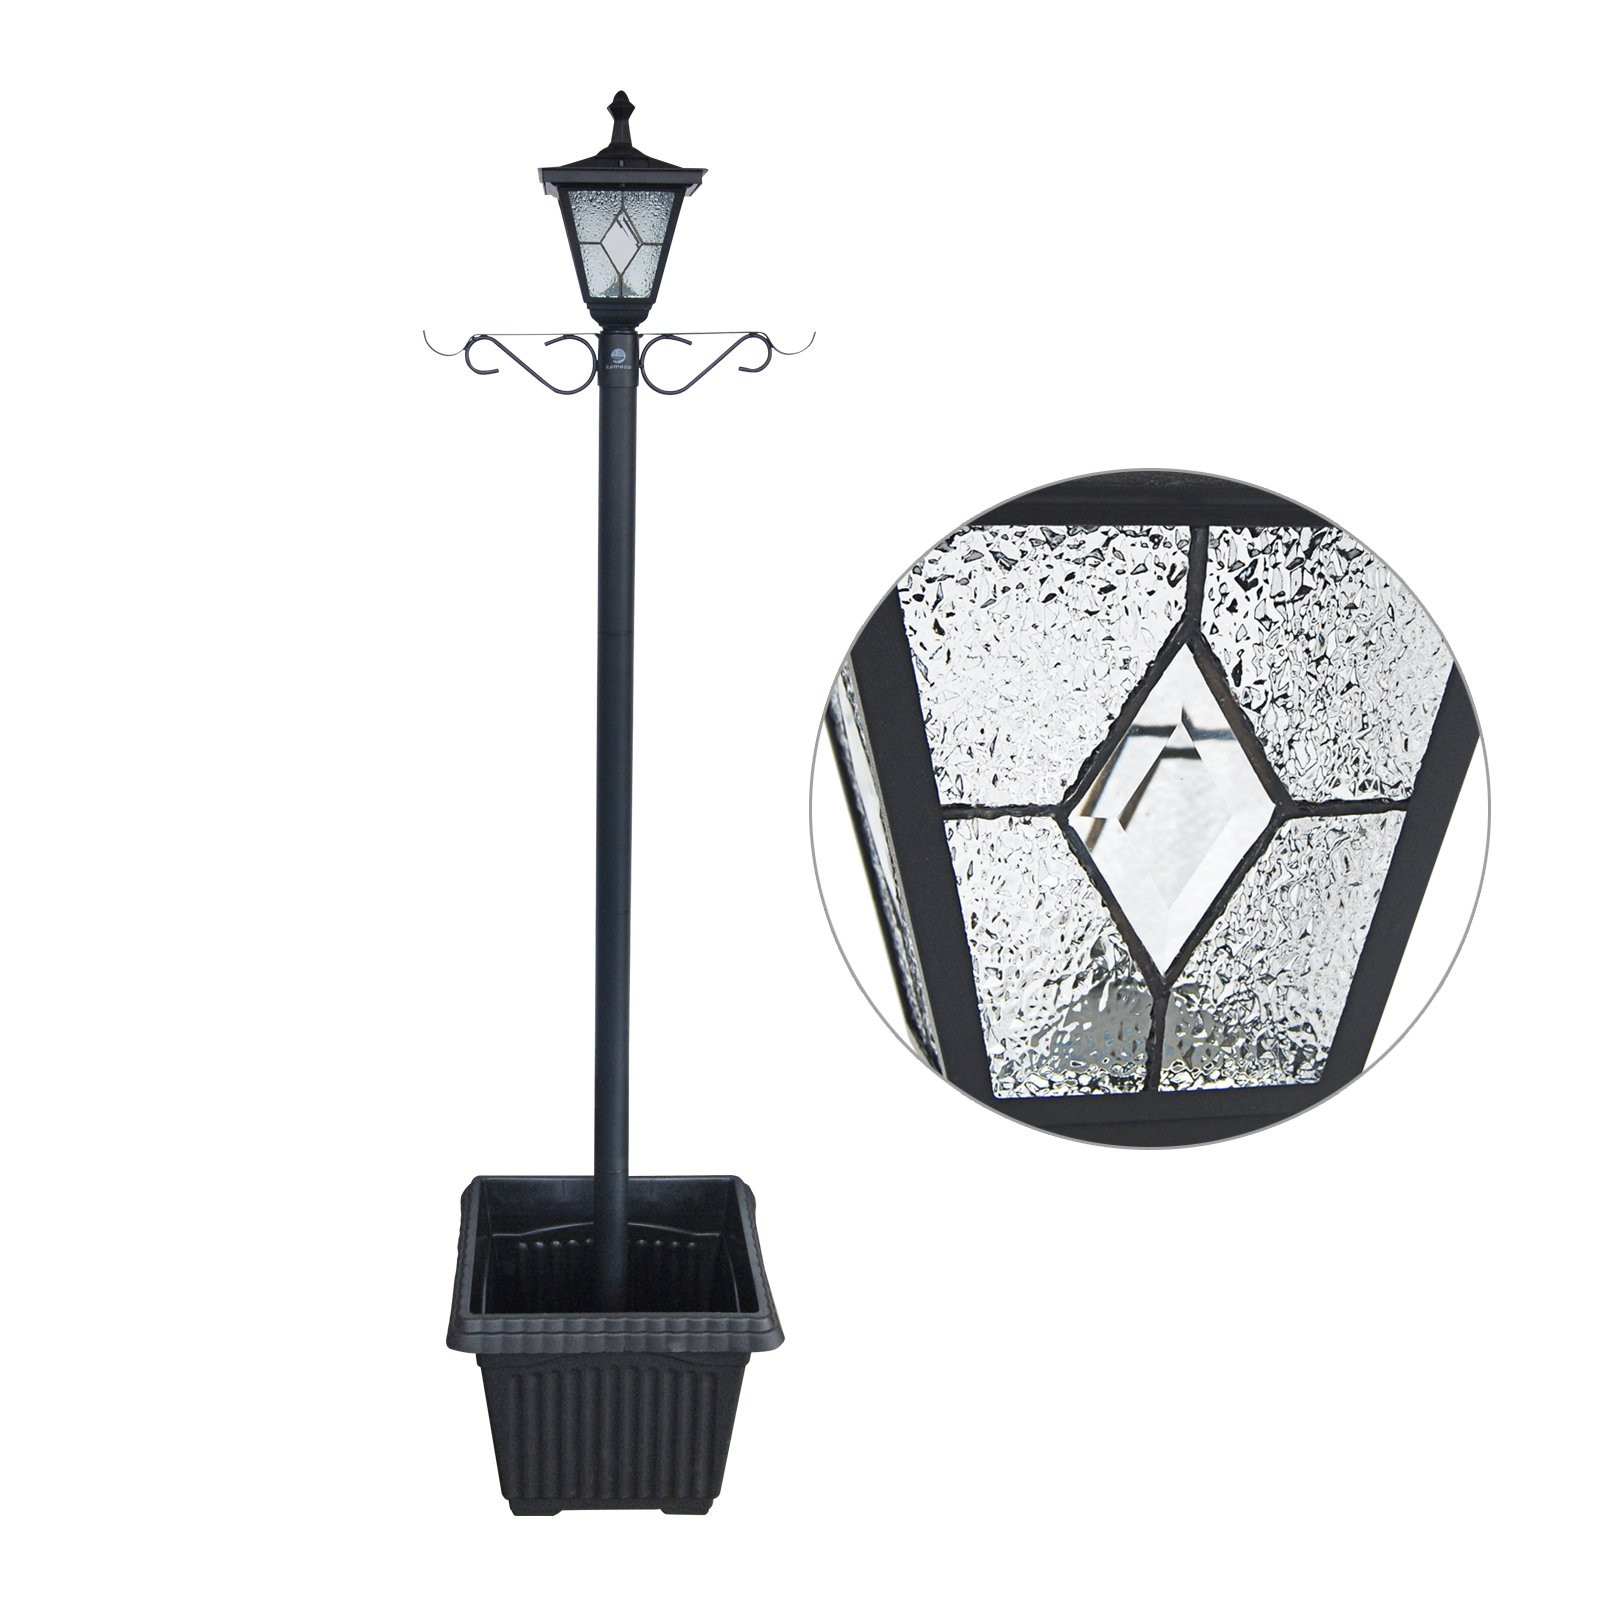 Kemeco ST4221SSP4 LED Cast Aluminum Solar Lamp Post Light with Planter Arm Hook for Outdoor Landscape Pathway Street Patio Garden Yard